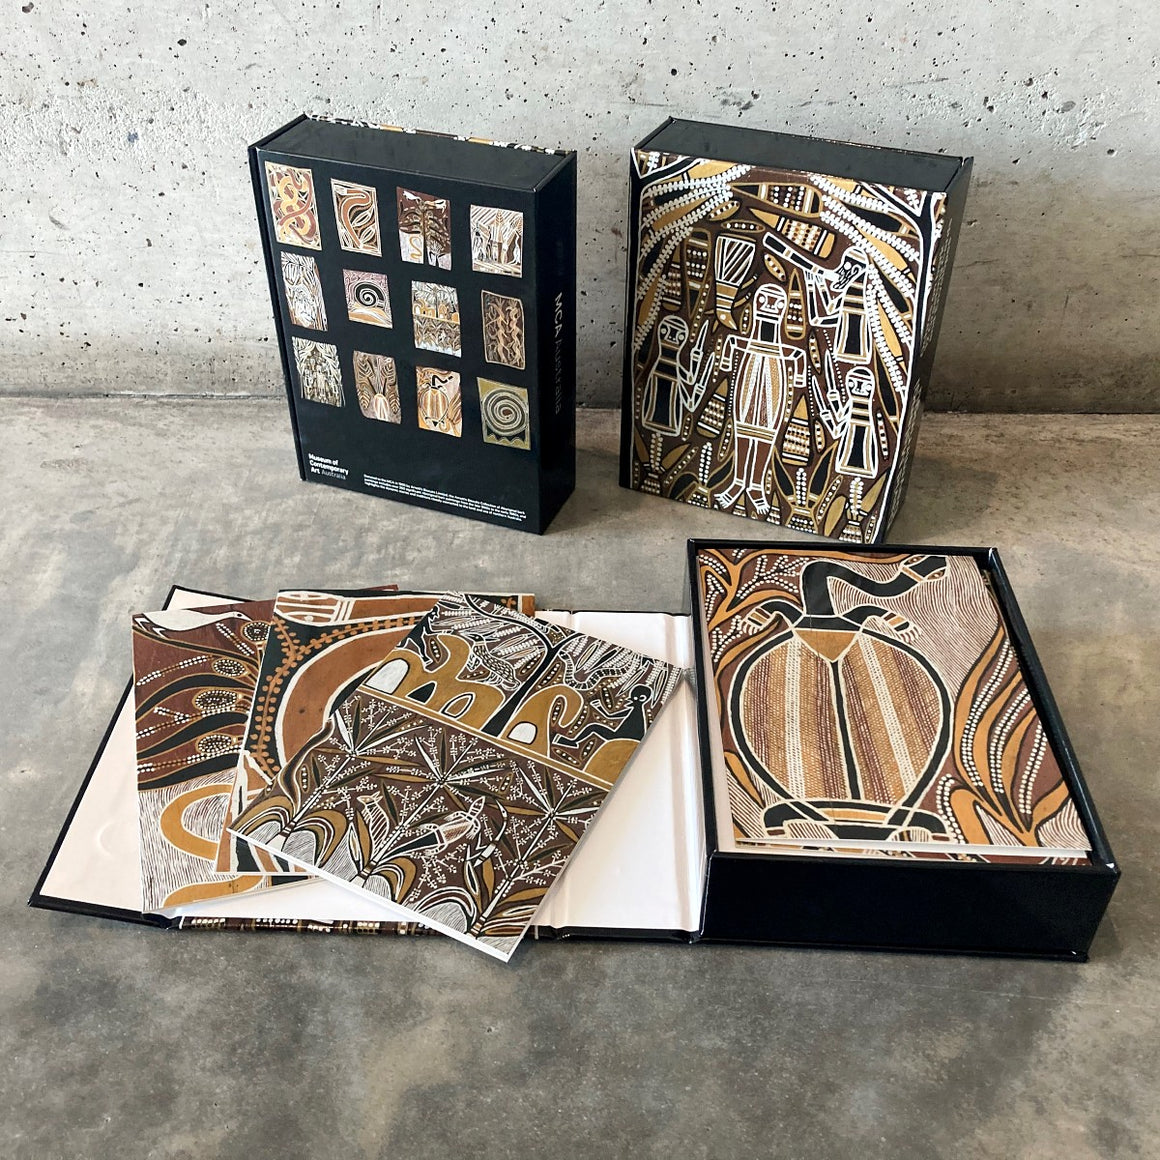 The front and back of a card set containging 12 cards printed with the ochre on bark works by David Malangi Daymirringu. In the foreground one card set is open displaying four card designs.